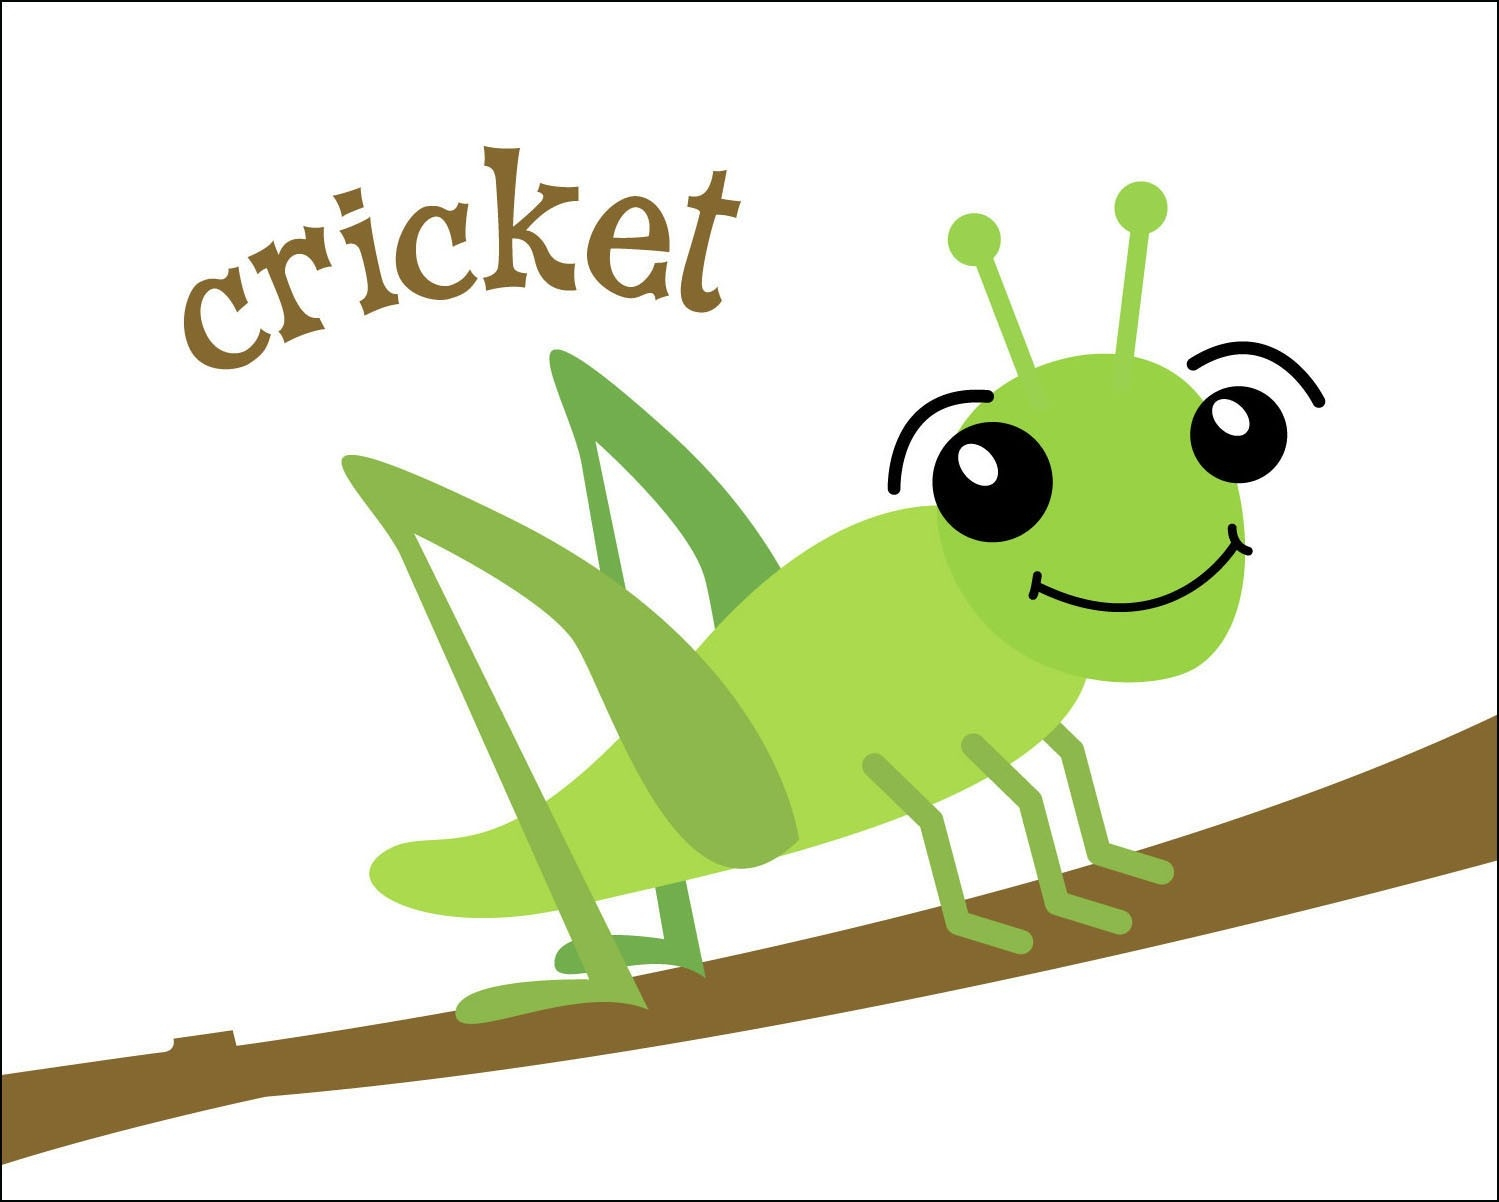 Insect cricket clipart clipartfox 3